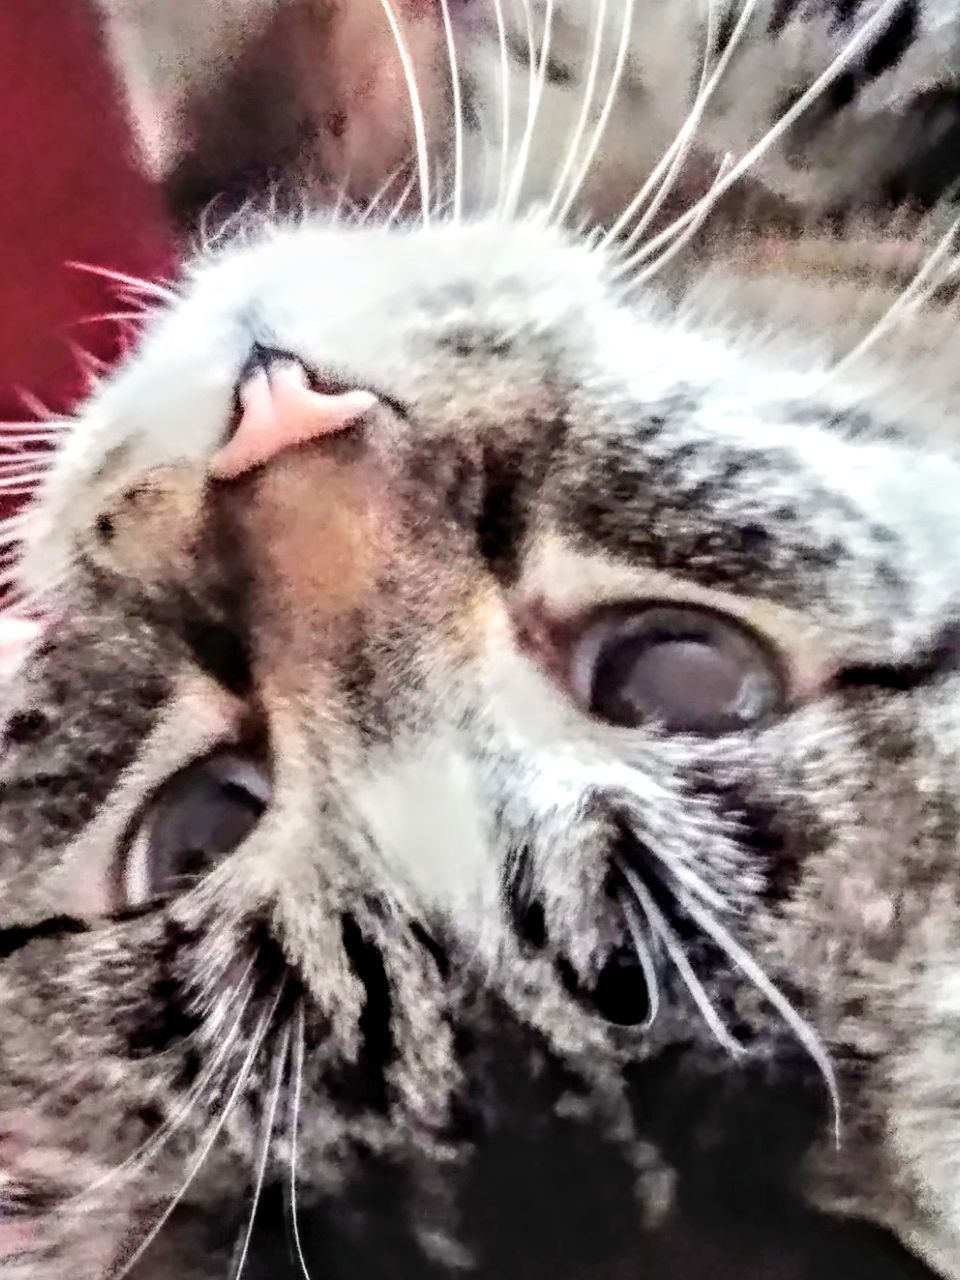 one animal, animal, domestic cat, animal themes, domestic, close-up, pets, mammal, domestic animals, animal body part, cat, feline, vertebrate, whisker, no people, animal head, selective focus, animal hair, indoors, focus on foreground, animal mouth, tabby